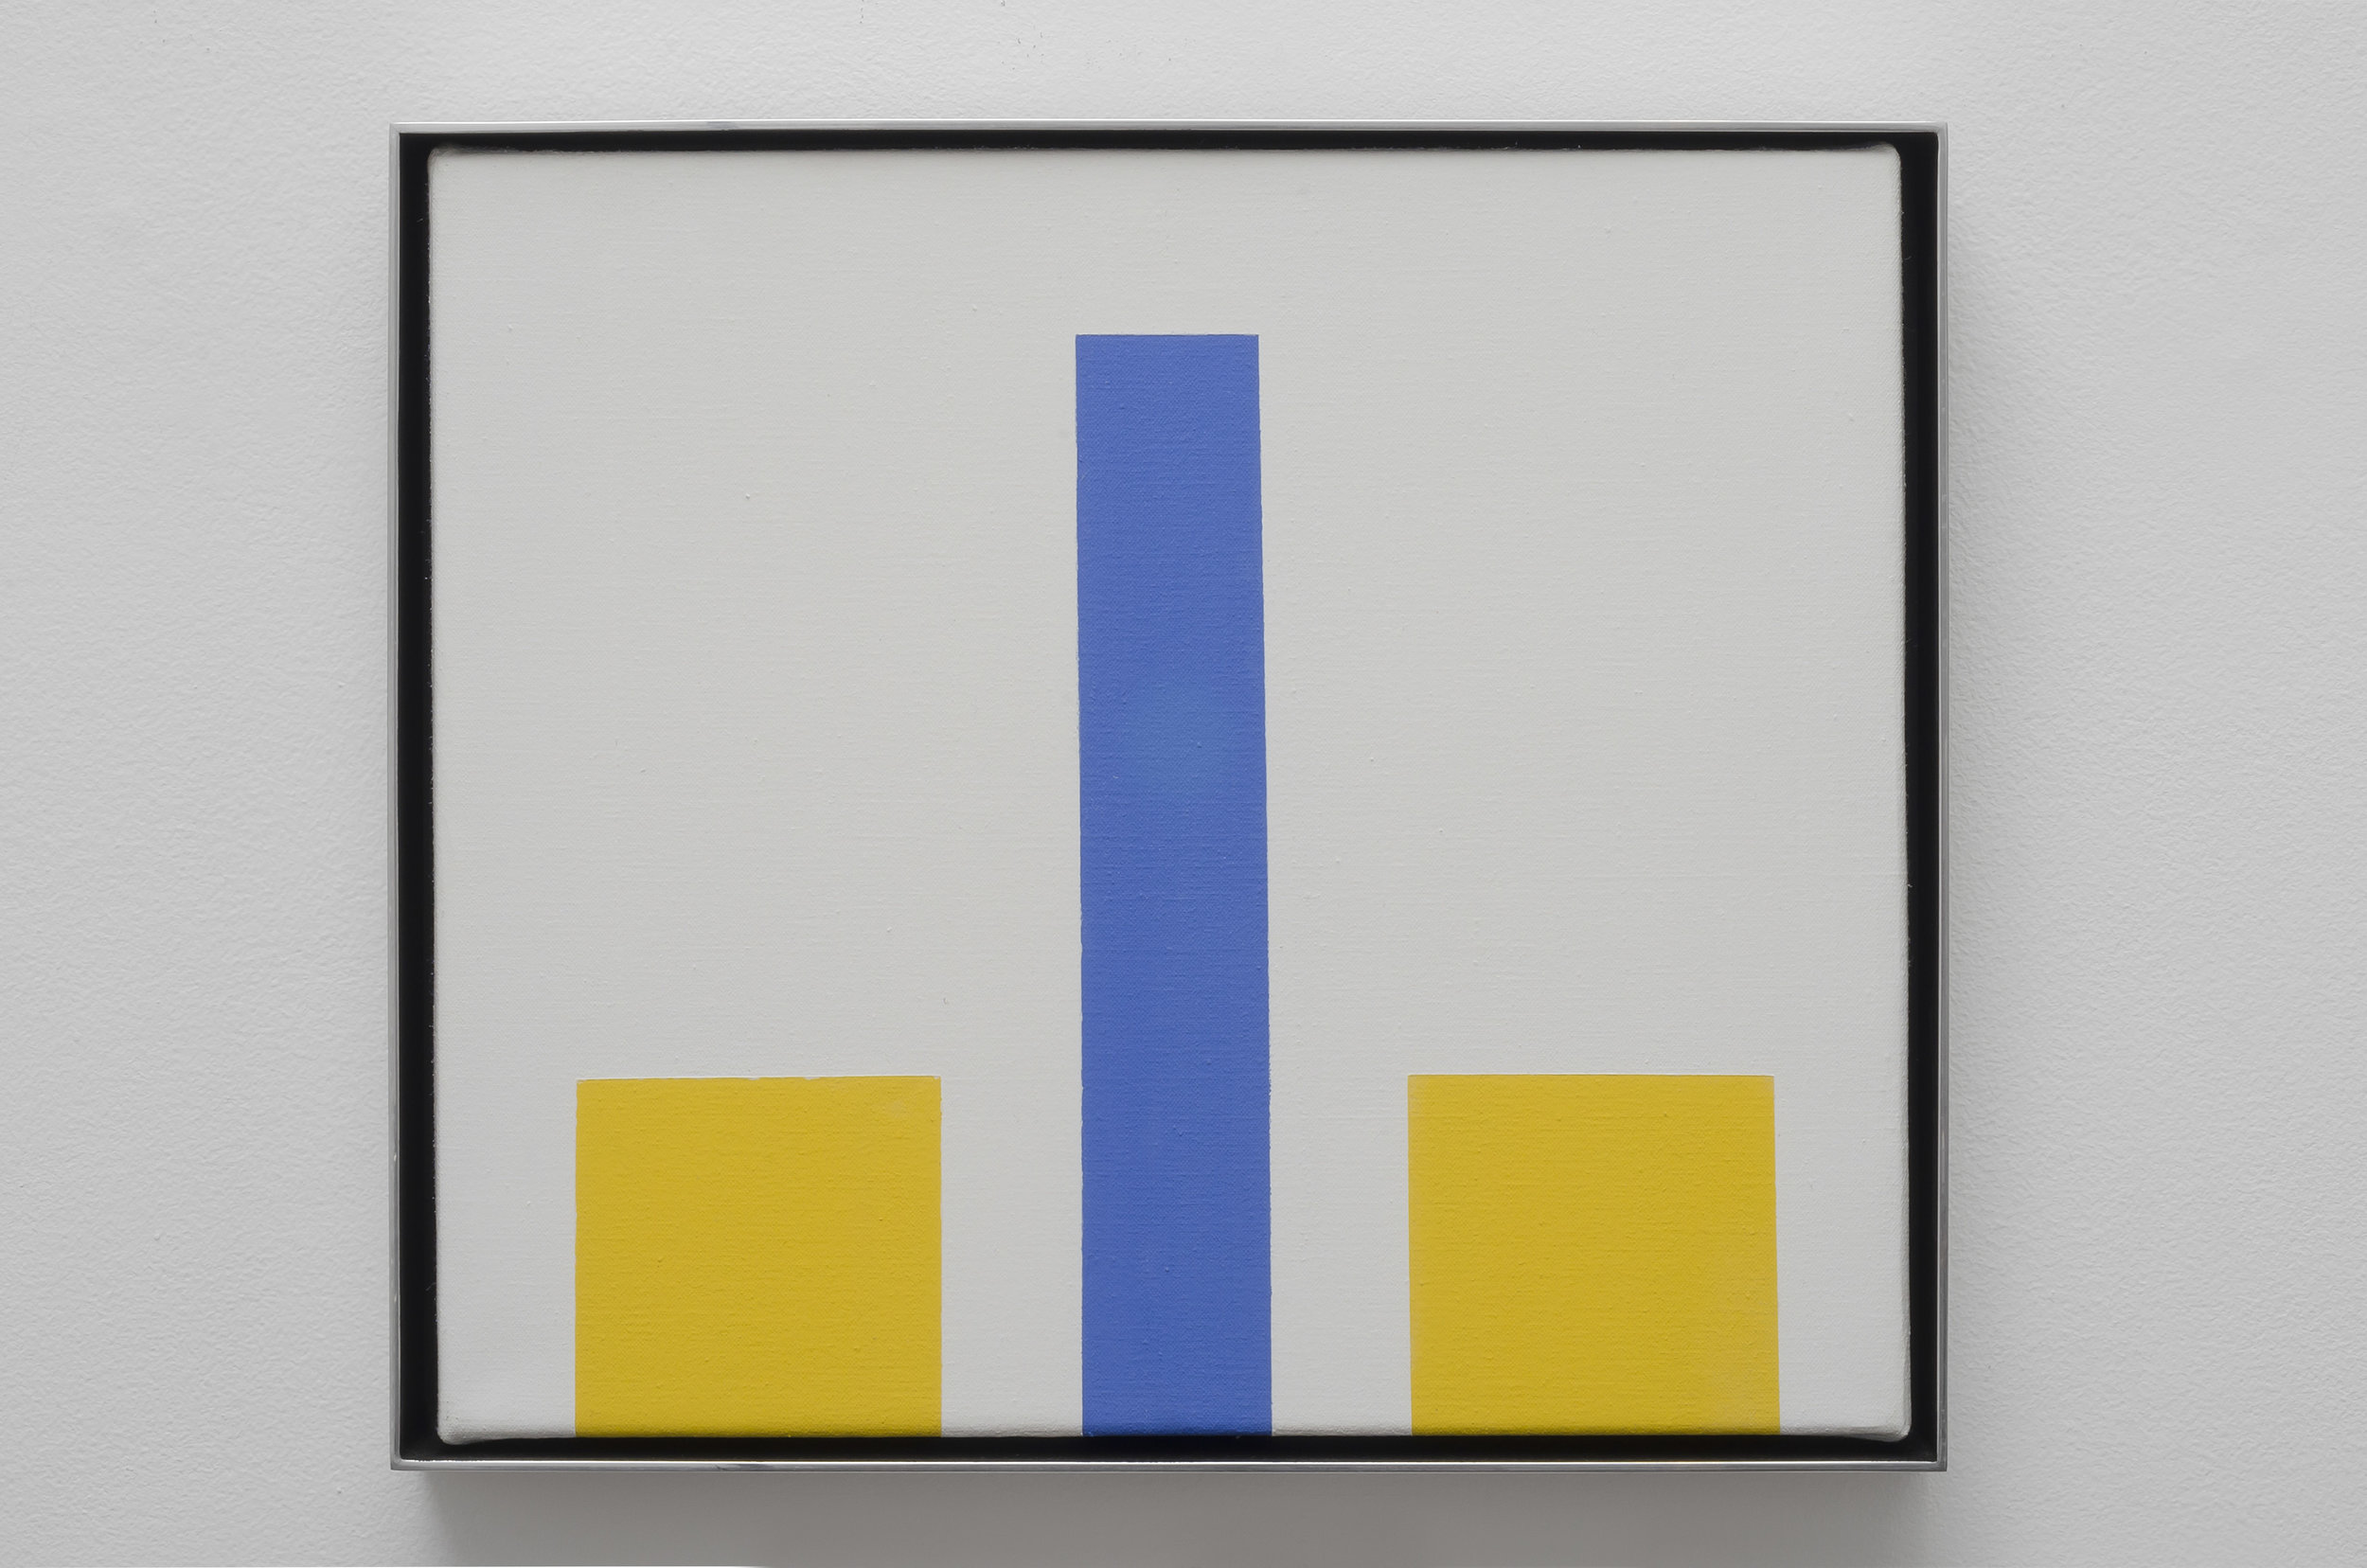 Untitled Geometric Abstraction, 1964  magna on canvas 14 x 15 3/4 inches; 35.6 x 40 centimeters